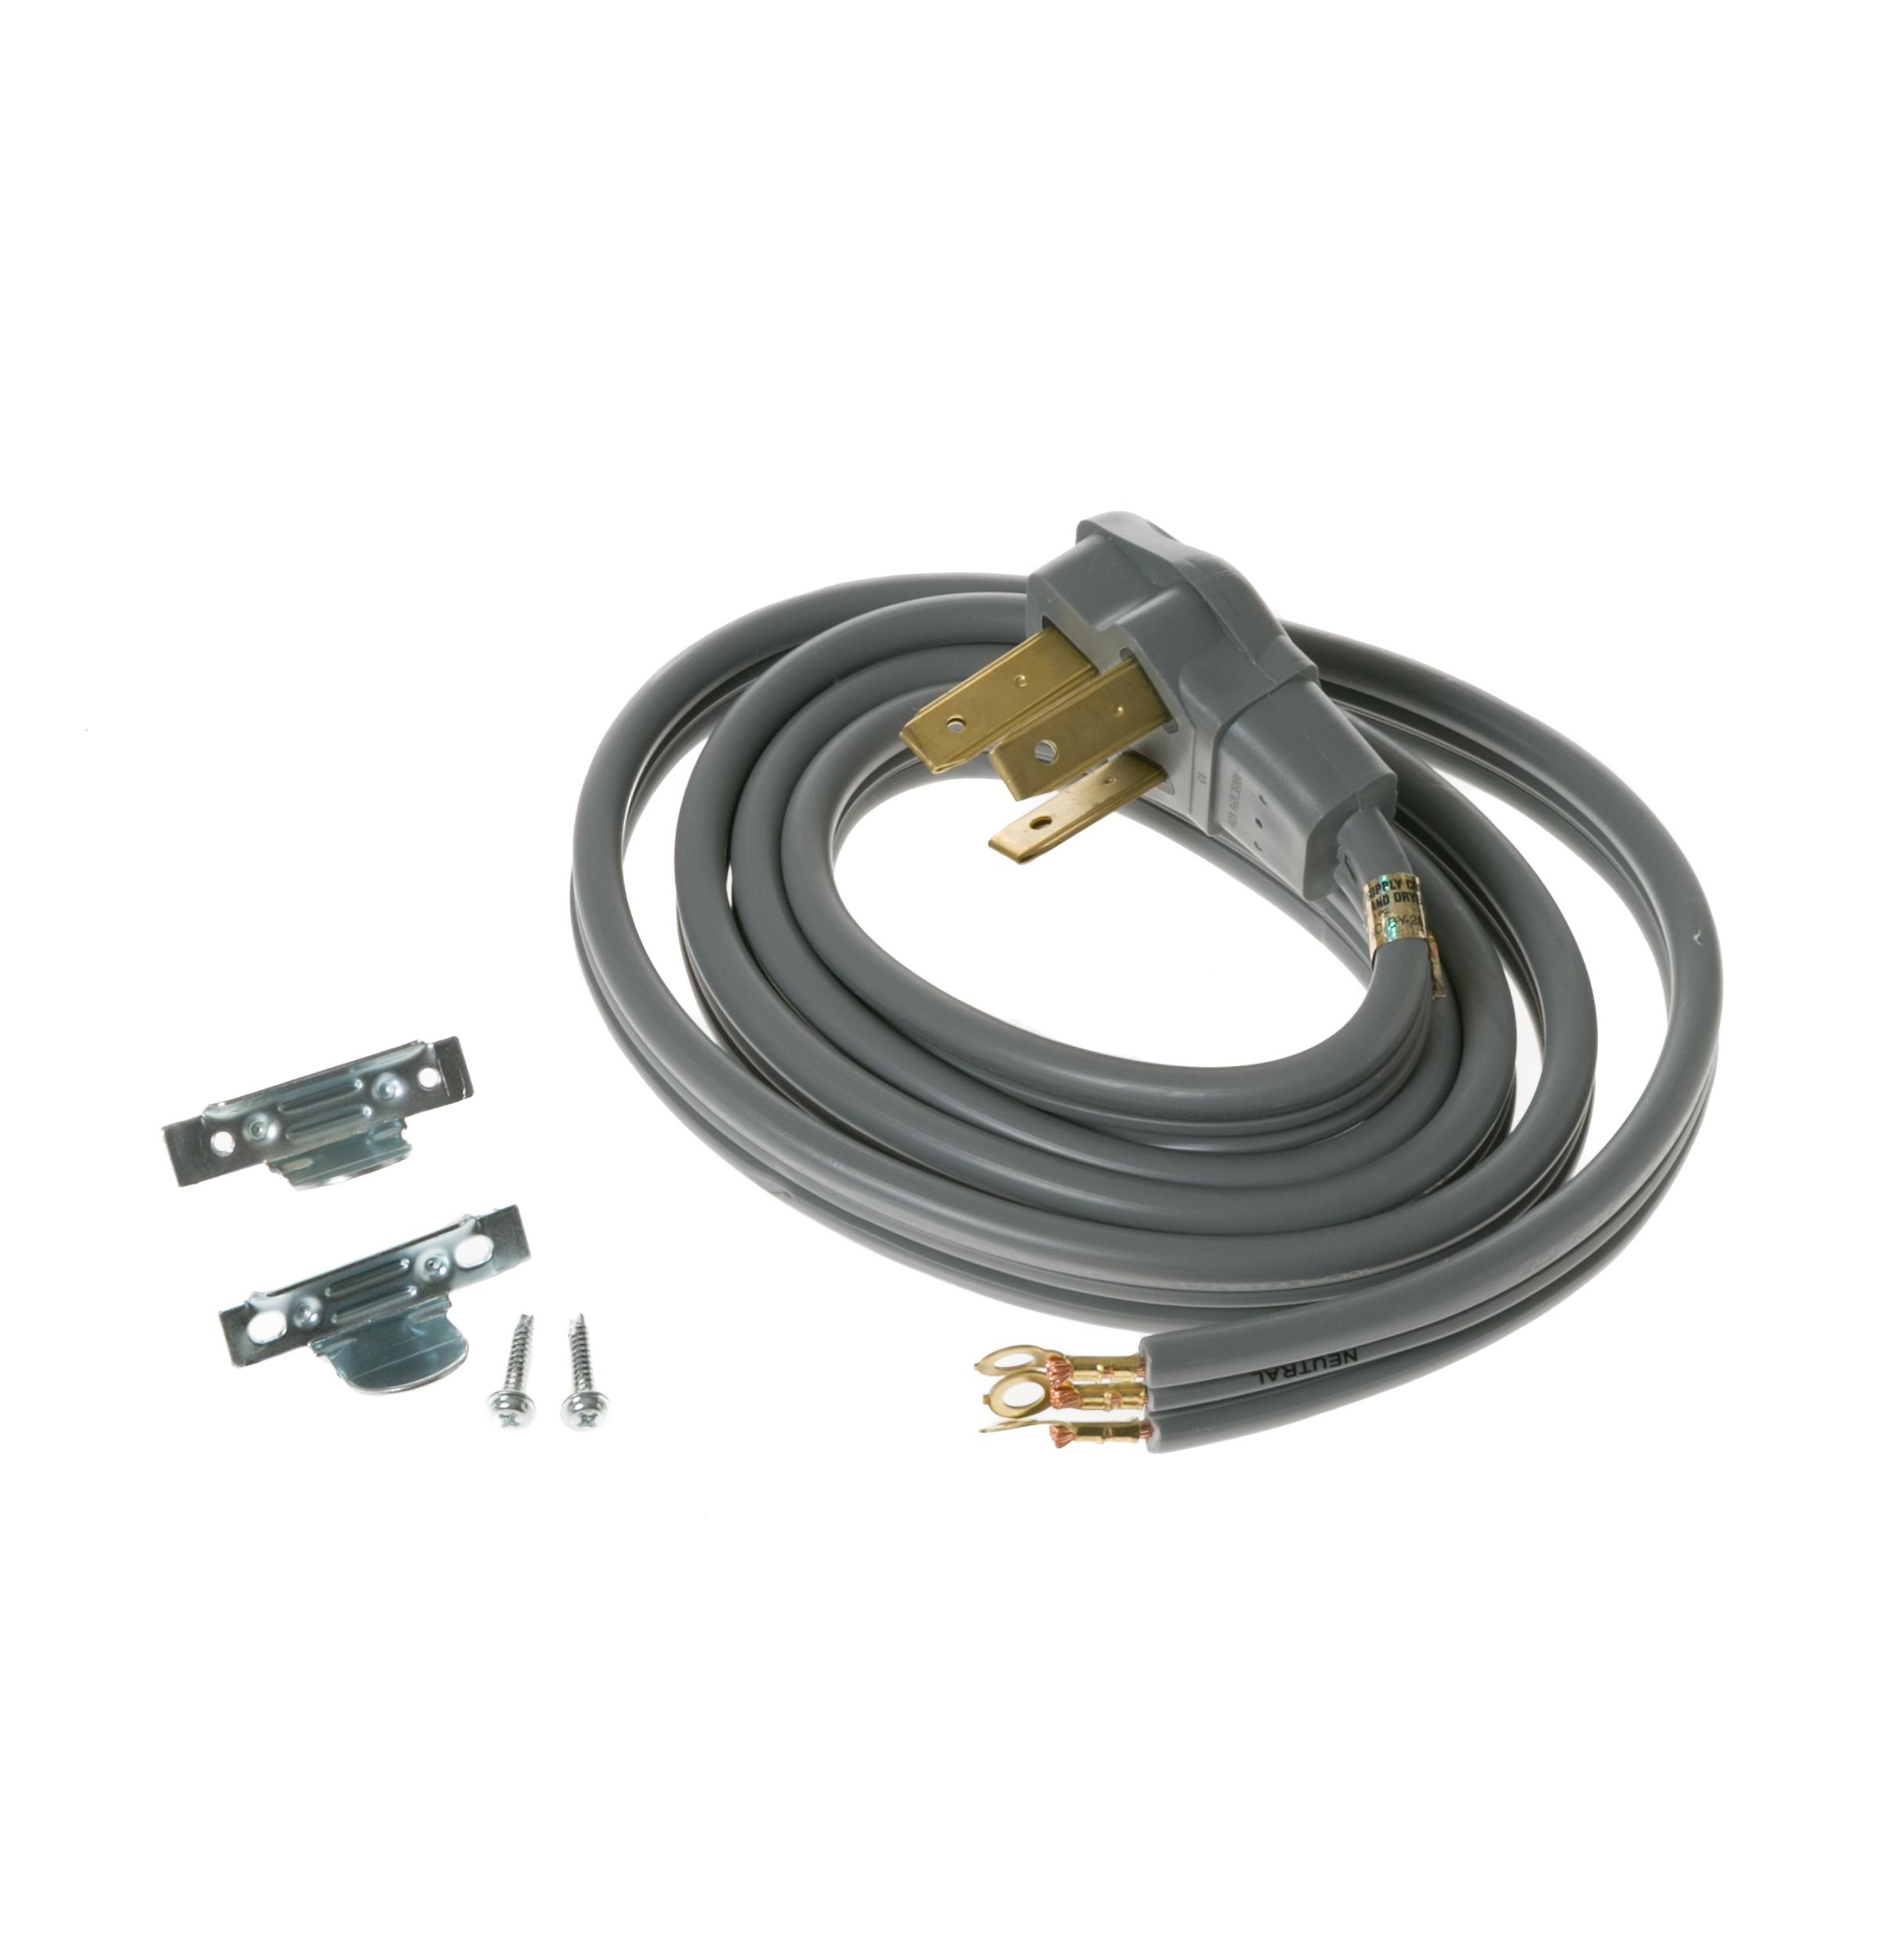 Cable Electric Oven : Amp wire range cord electric accessories